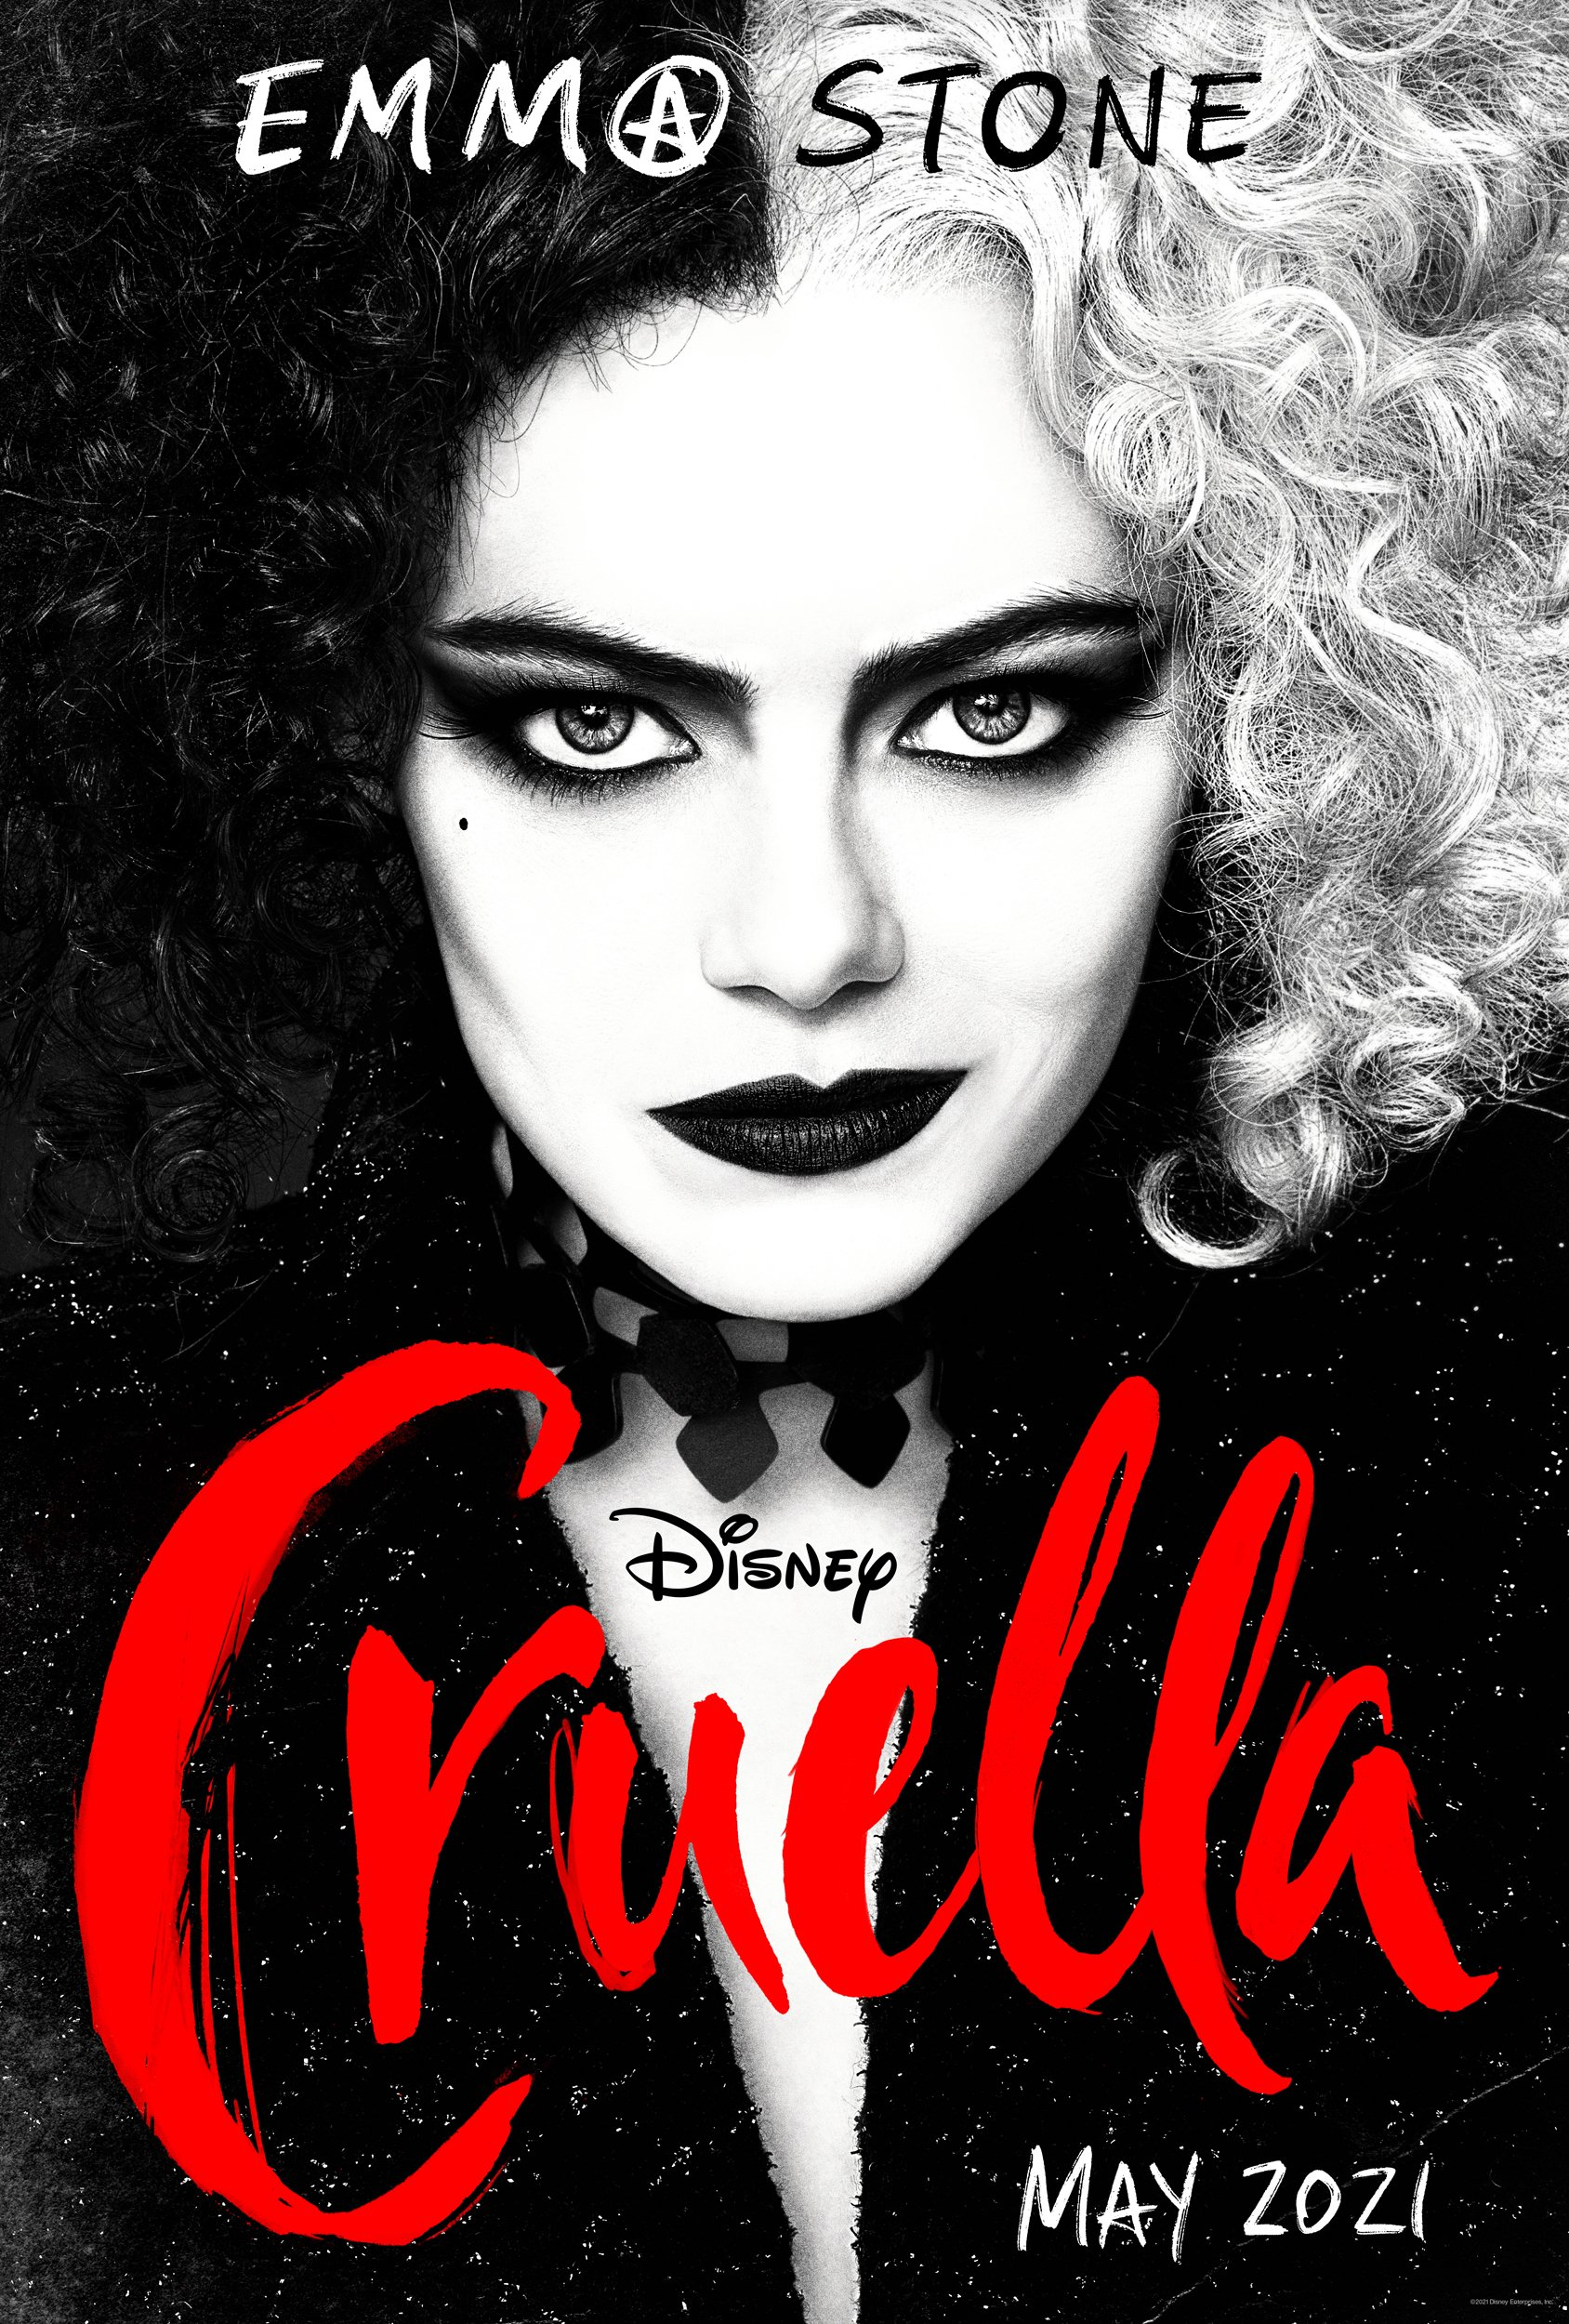 Disney's live action Cruella is rated PG-13........but is it scary? Can kids watch it? This no spoilers Cruella review will help you decide!